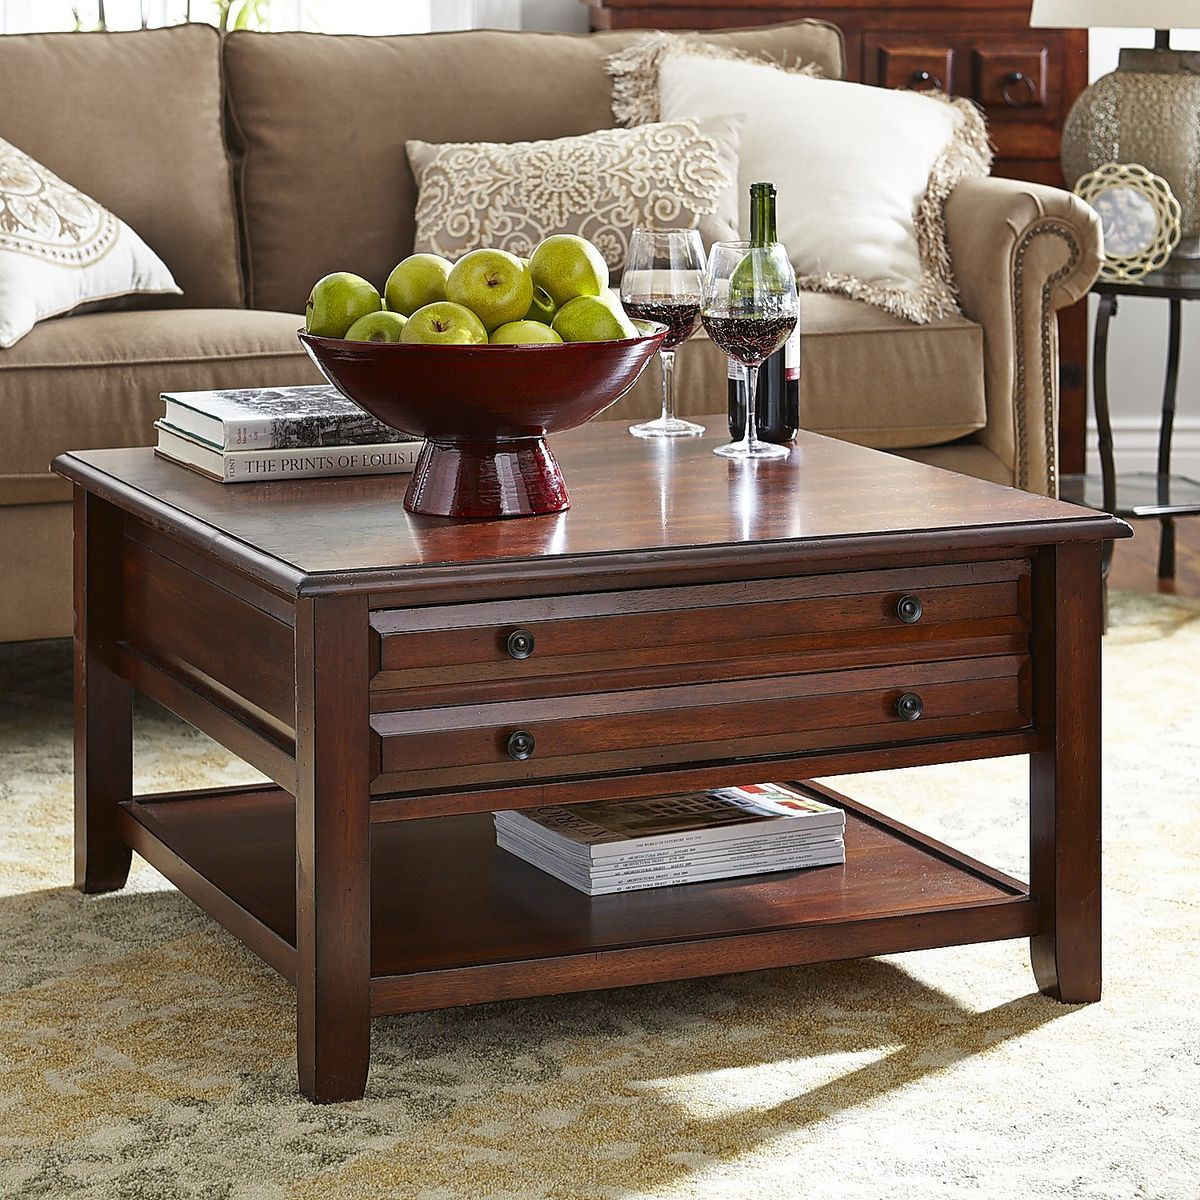 Anywhere Square Coffee Table Tuscan Brown Pier 1 Imports